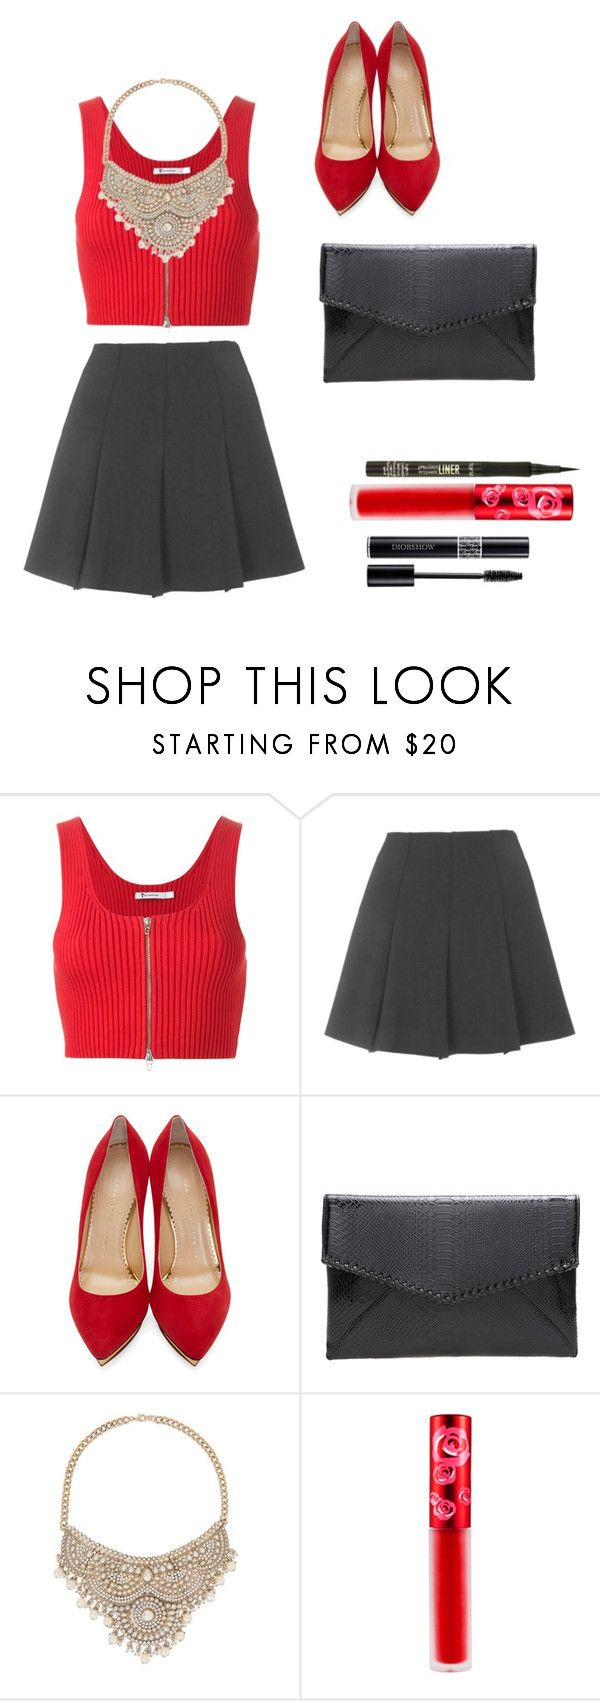 """""""Attacked by Paparazzi"""" by frazzlebear ❤ liked on Polyvore featuring T By Alexander Wang, Topshop, Charlotte Olympia, Bebe, Lime Crime, Christian Dior and tarte"""